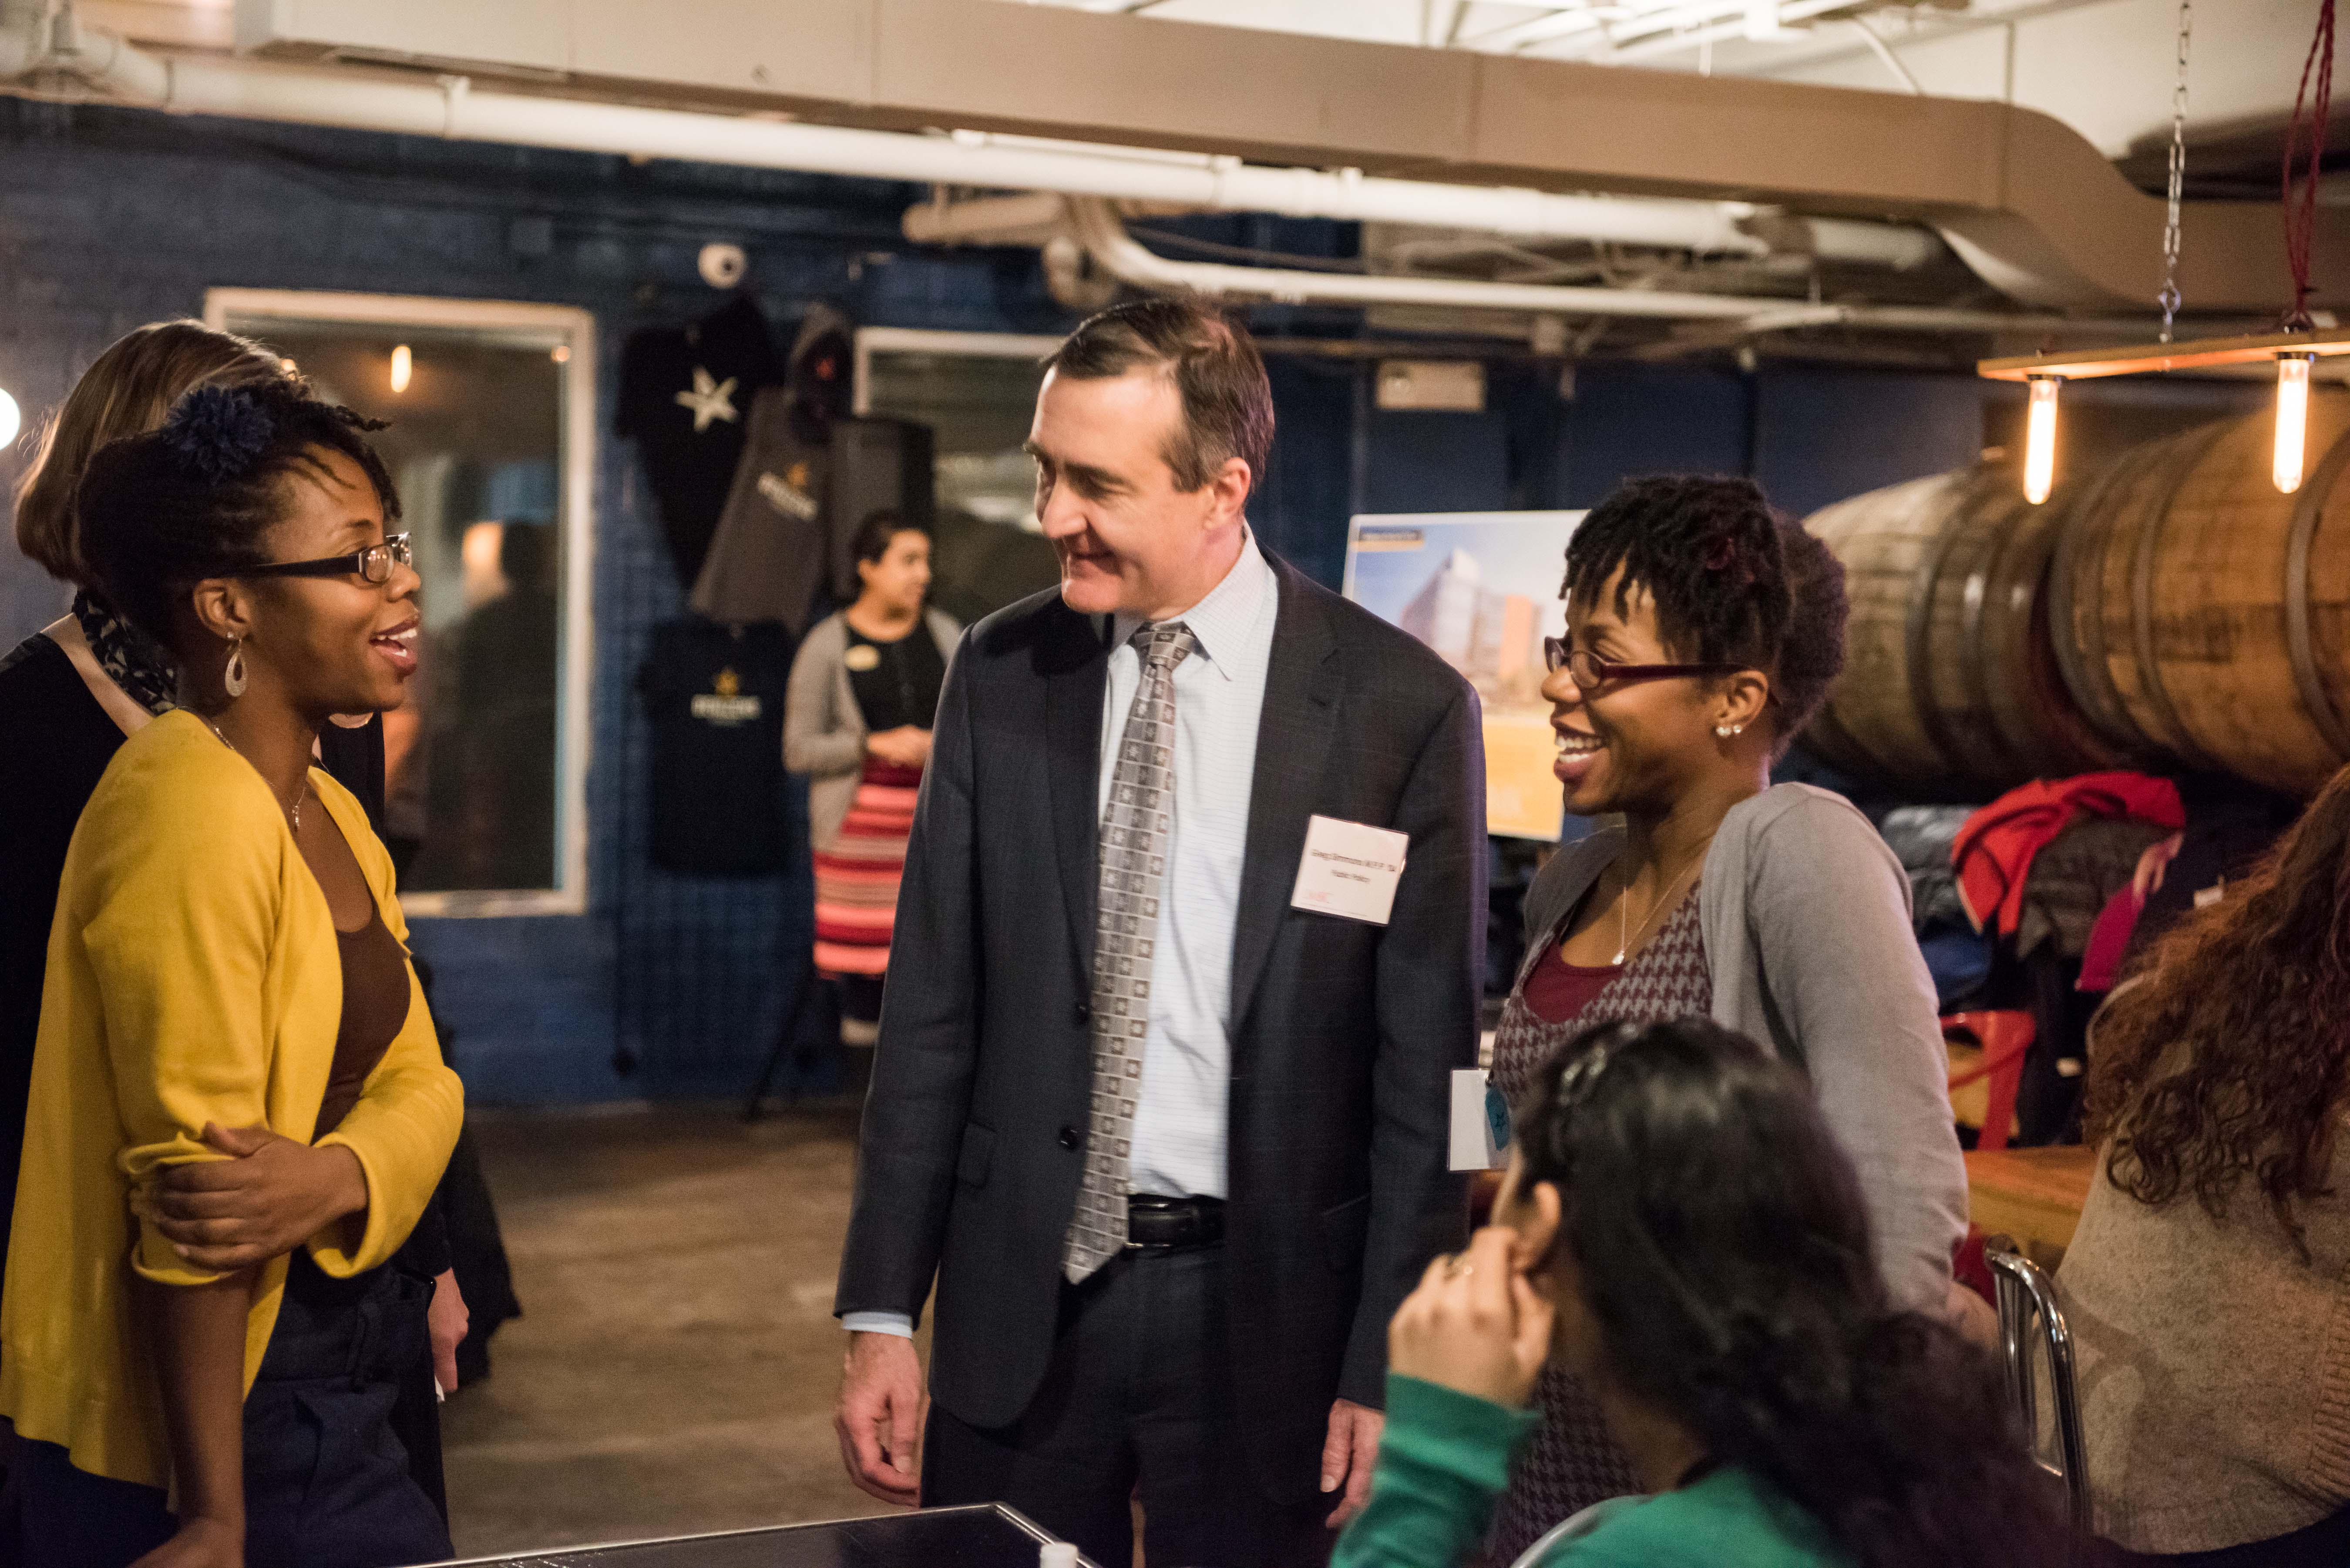 Greg simmons talks to group of women for chocolate city bar talk